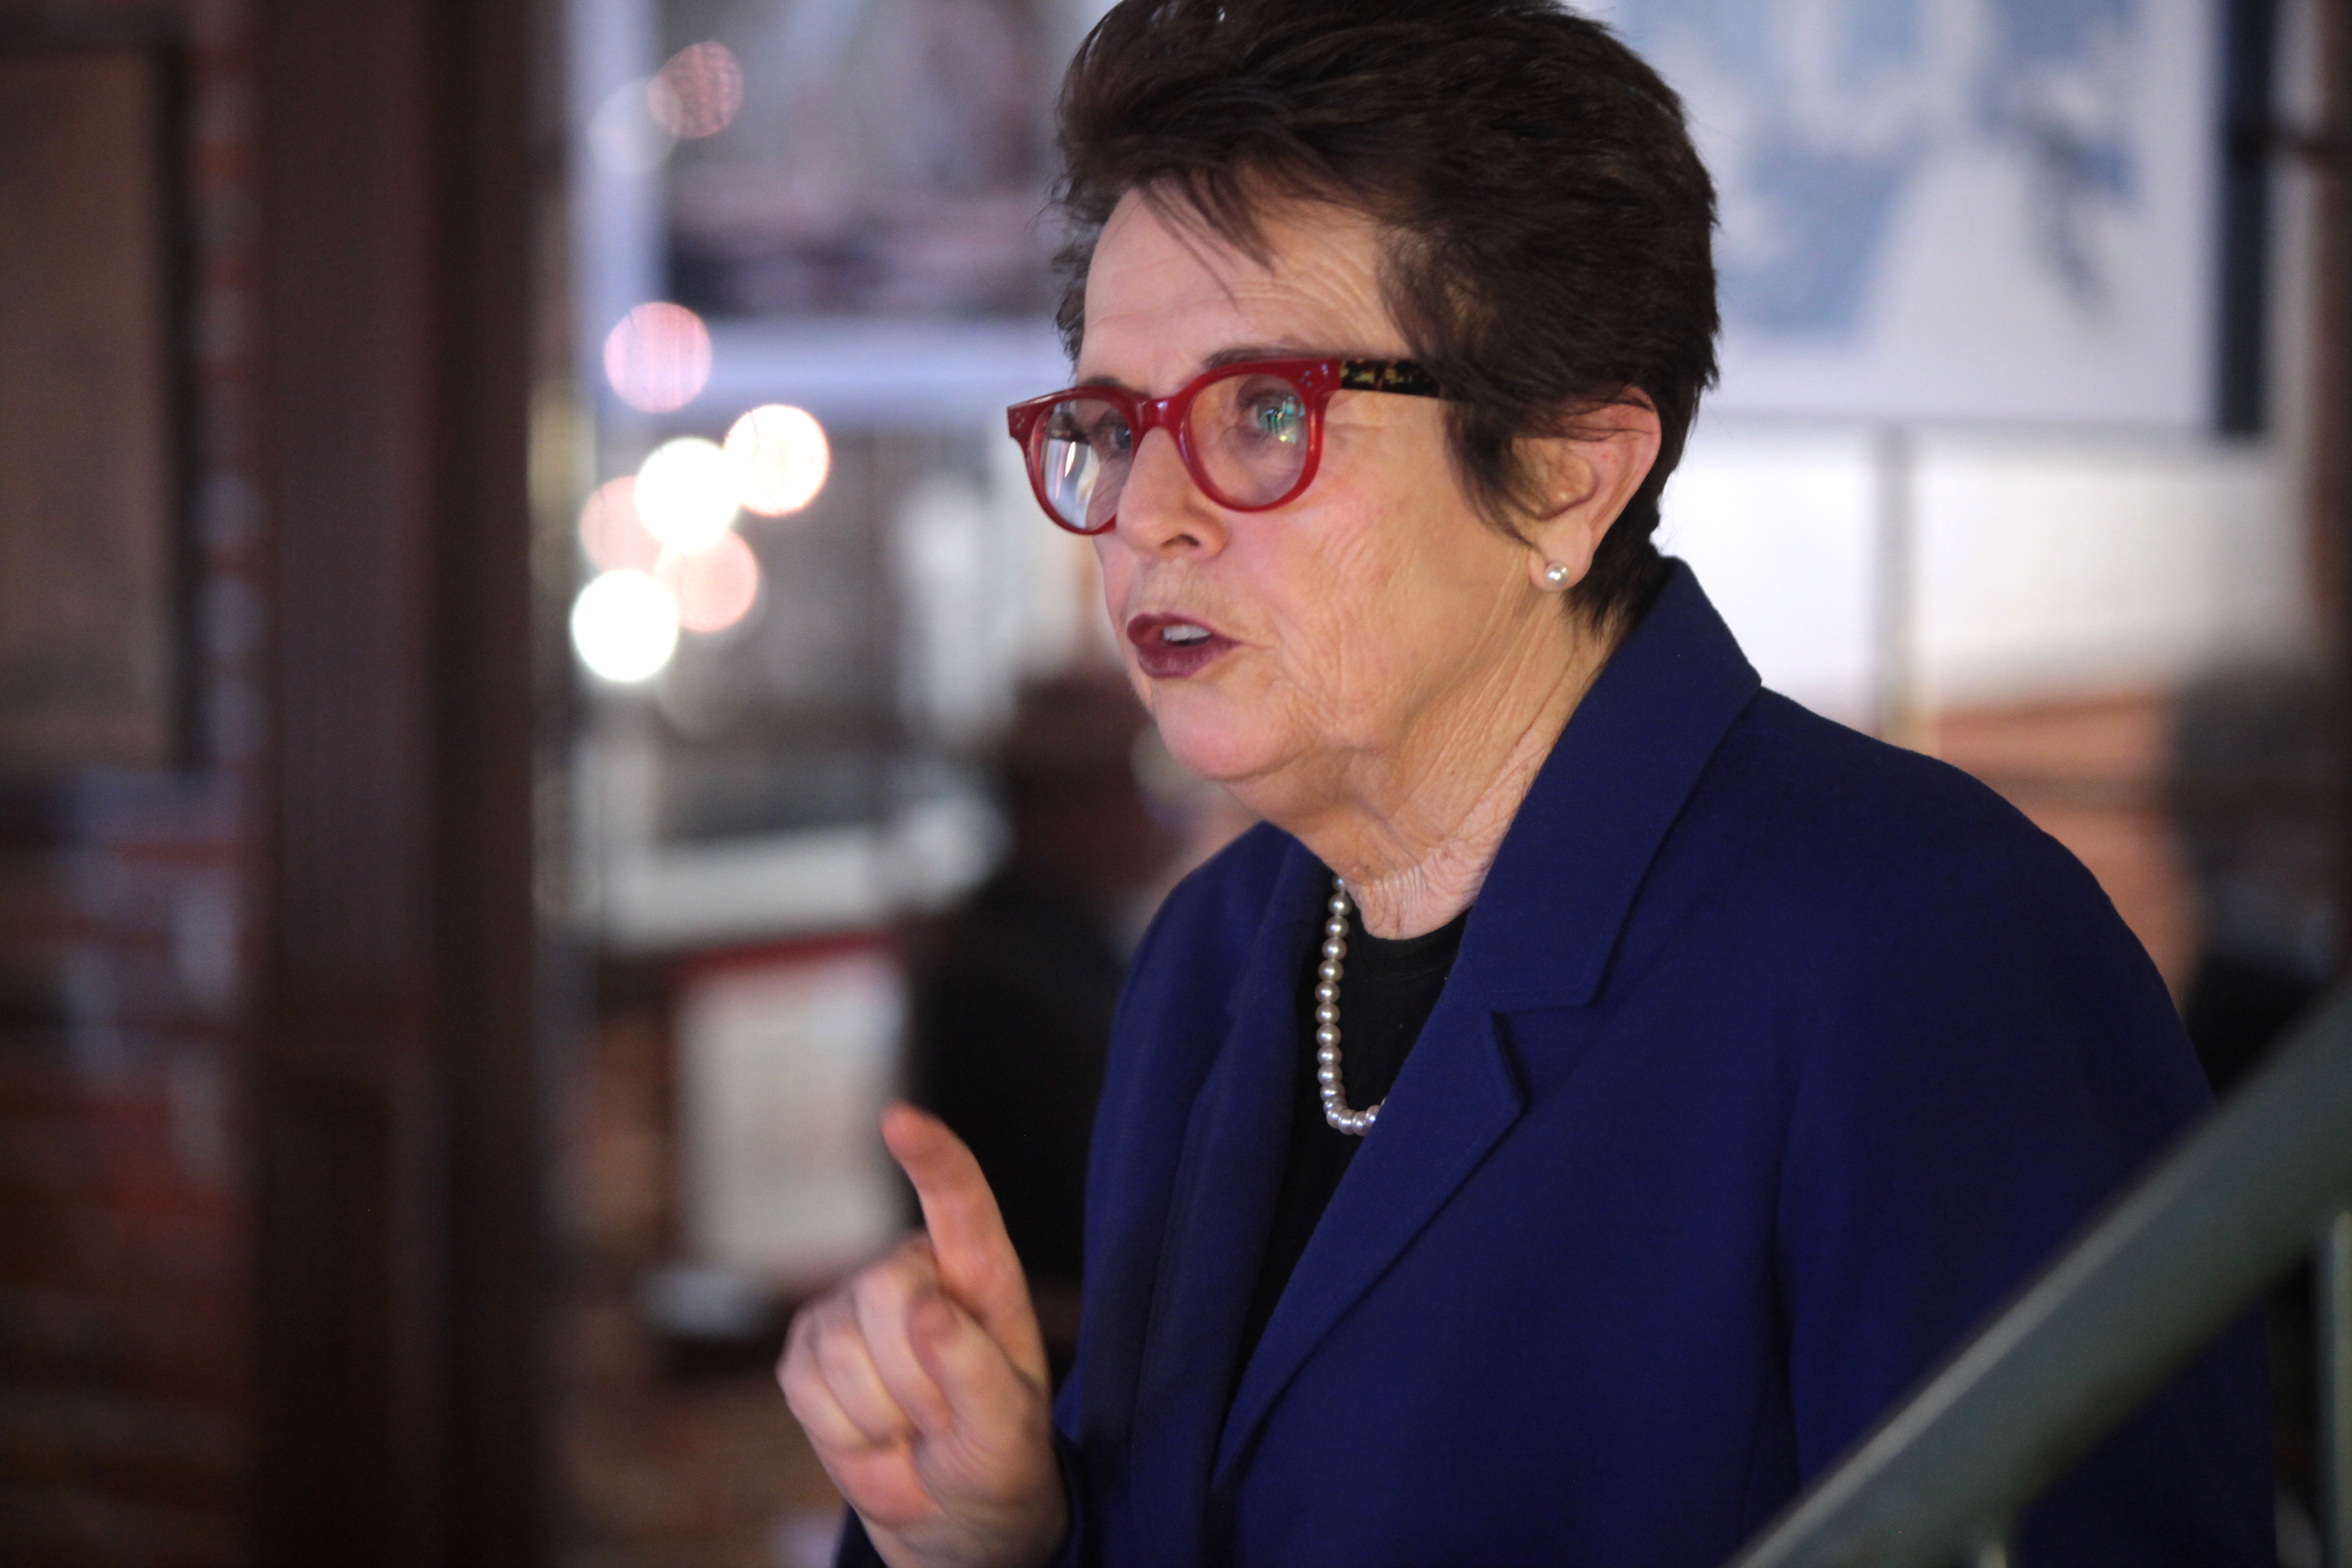 Billie jean king now wants margaret court's name stripped